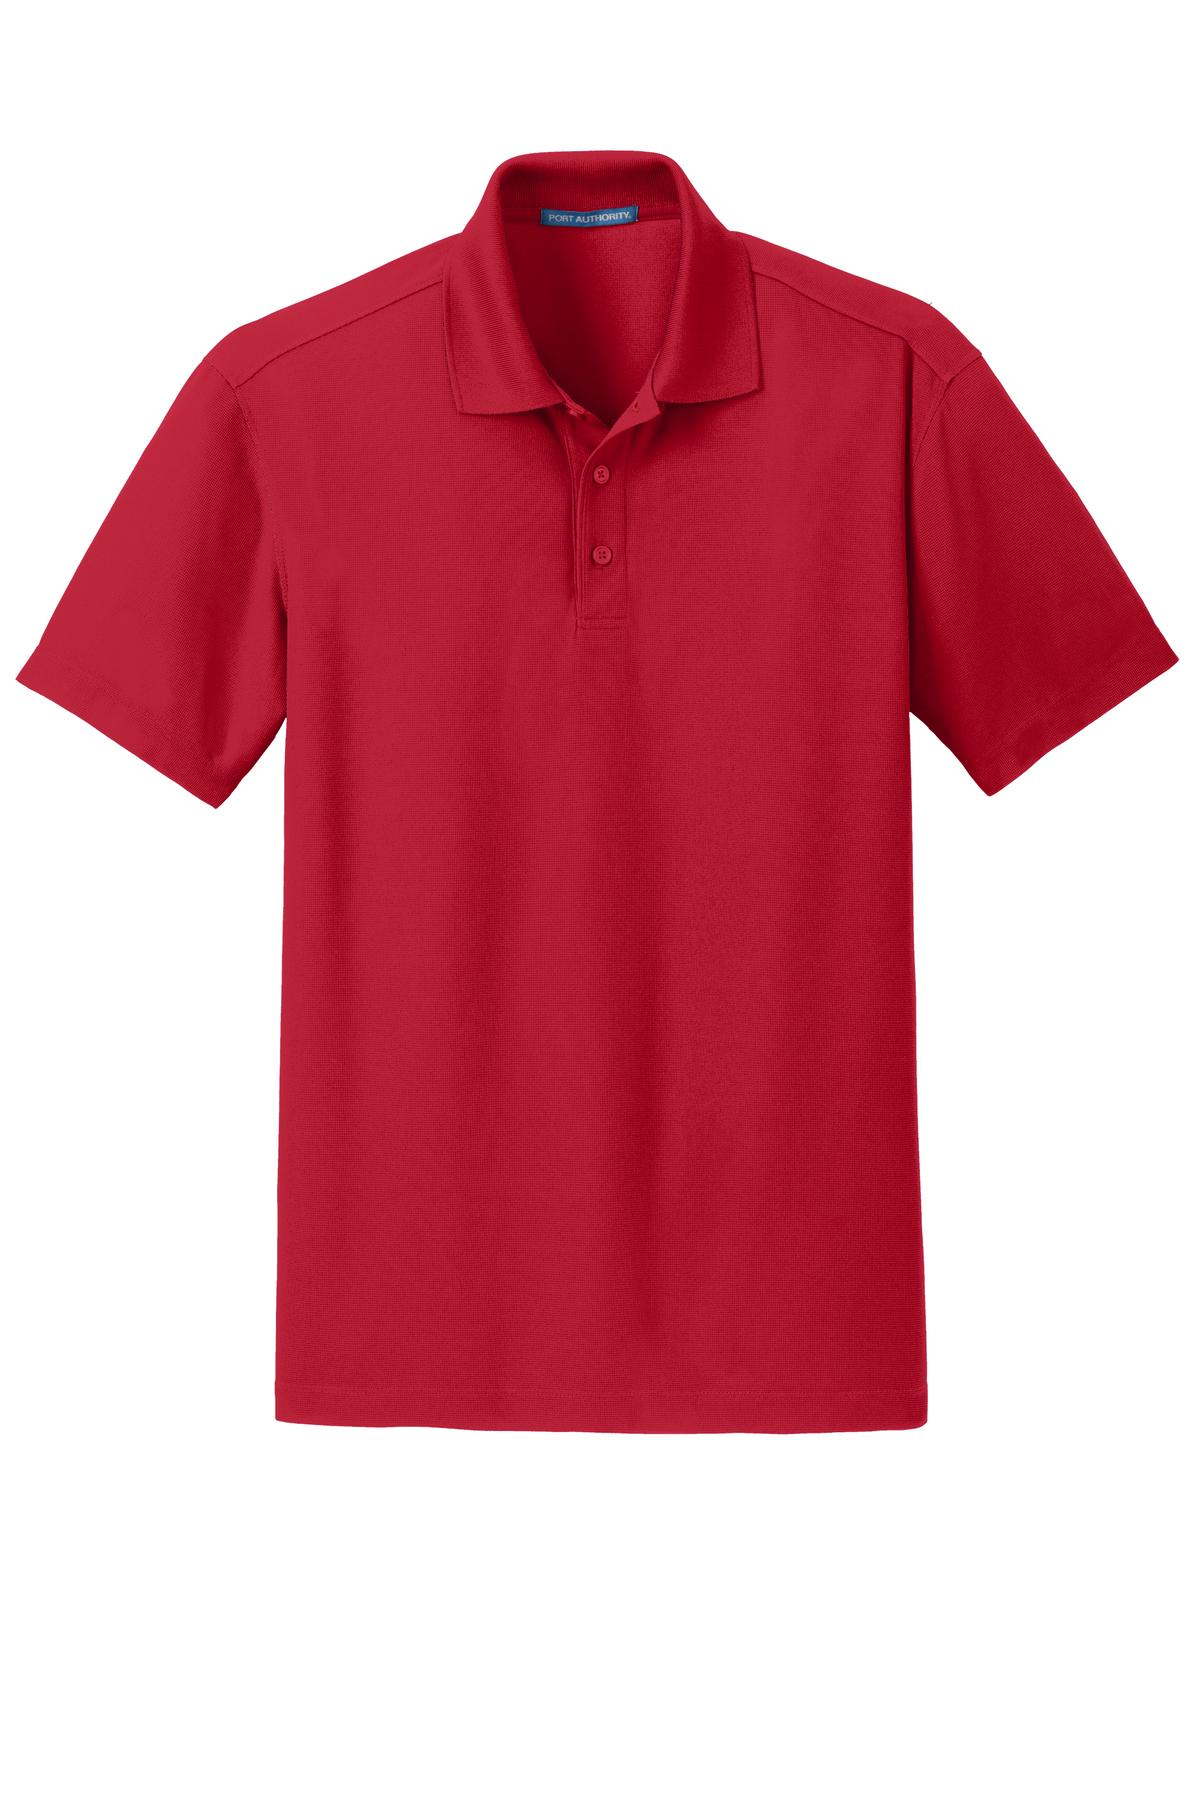 00d55a28 Rhodes - Product: Rhodes Logo Men's Port Authority Dry Zone Grid Polo